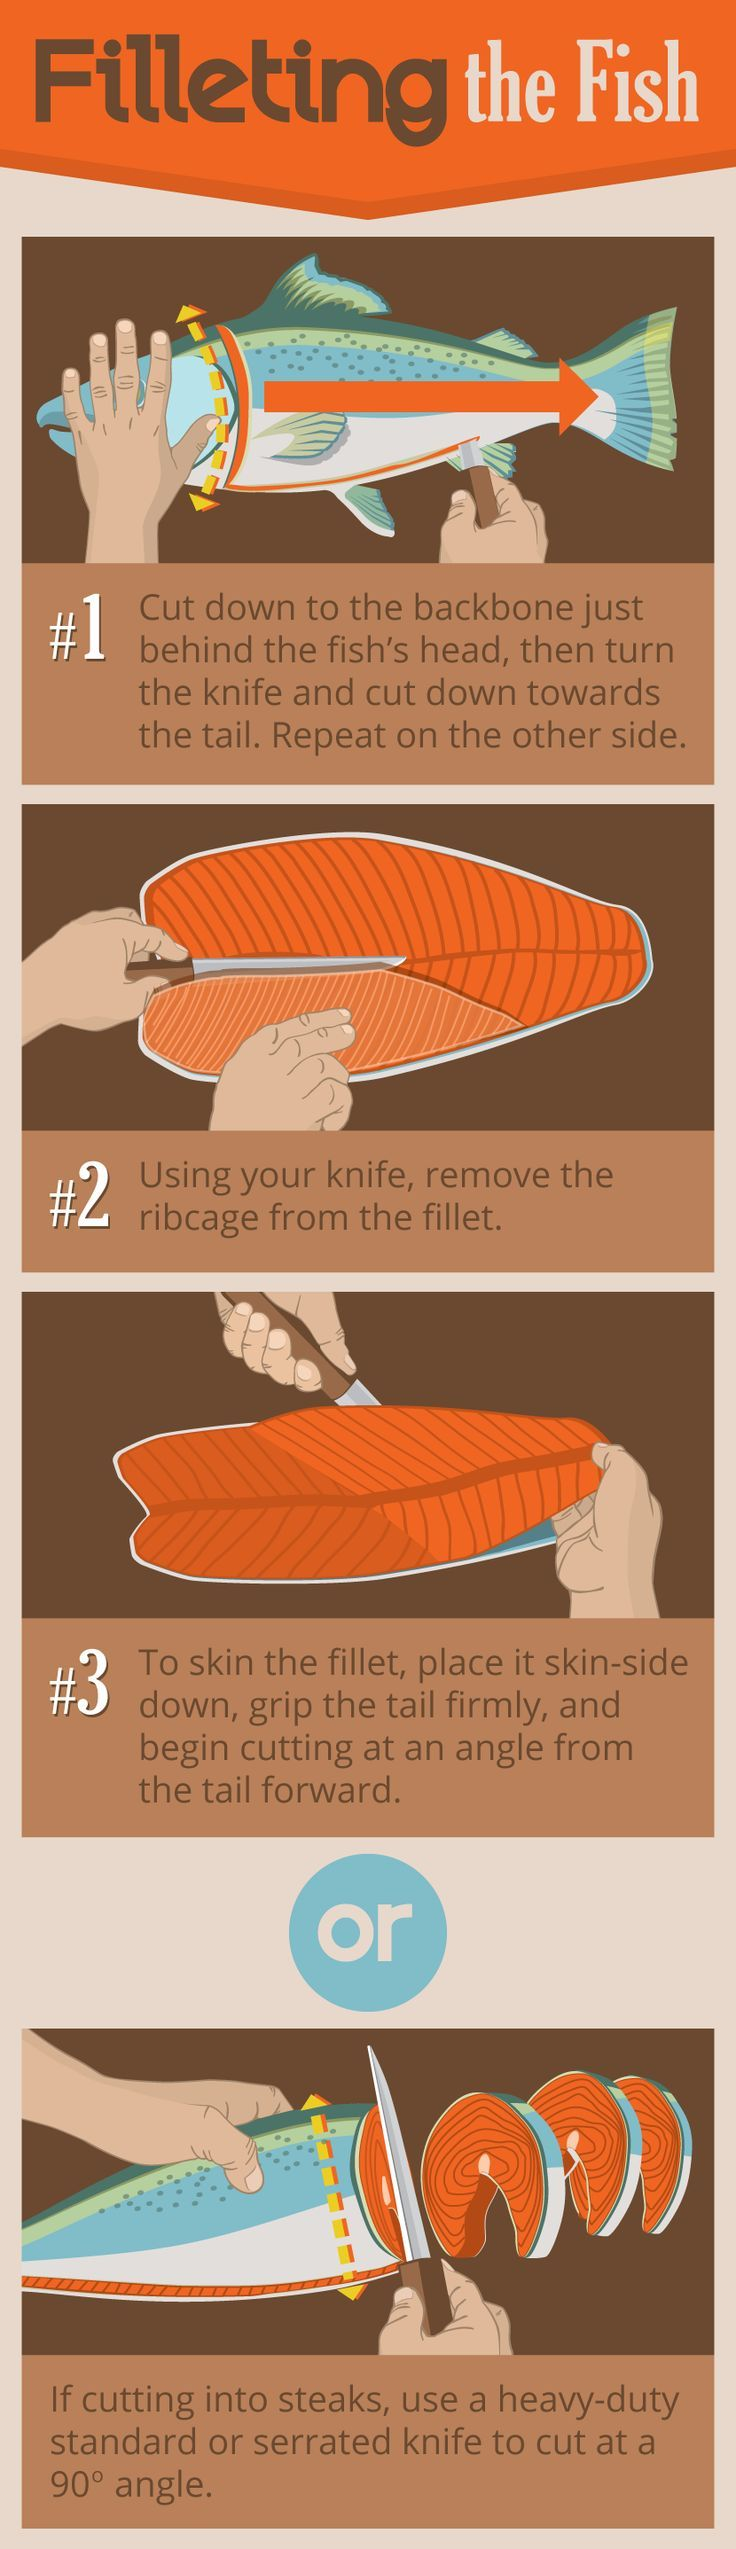 Filleting the Fish - Hook to Cook Repinned by: National At-Home Dad Network www.athomedad.org